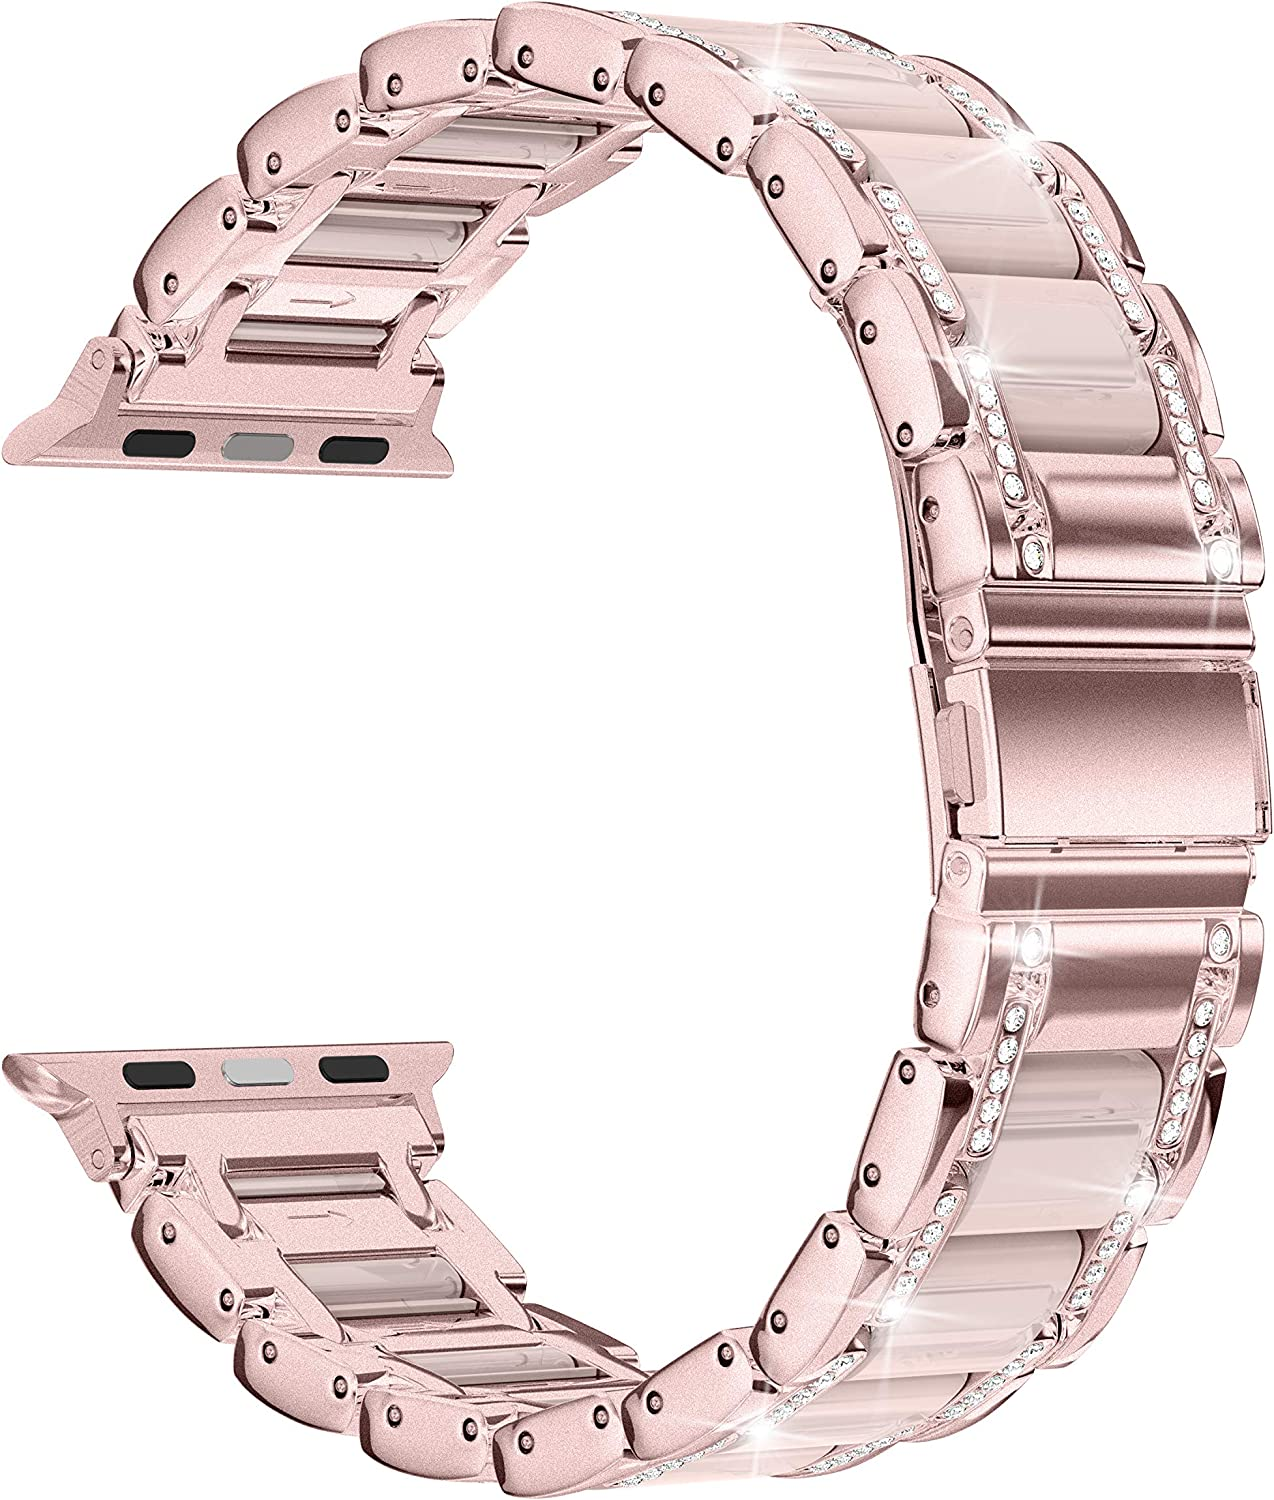 Moolia Metal Band Compatible with Apple Watch Band 38mm 40mm Women Rhinestones Resin Wristband Bling Diamond Bracelet Replacement for iWatch Series 6 5 4 3 2 1 SE, Pink Gold +Pink